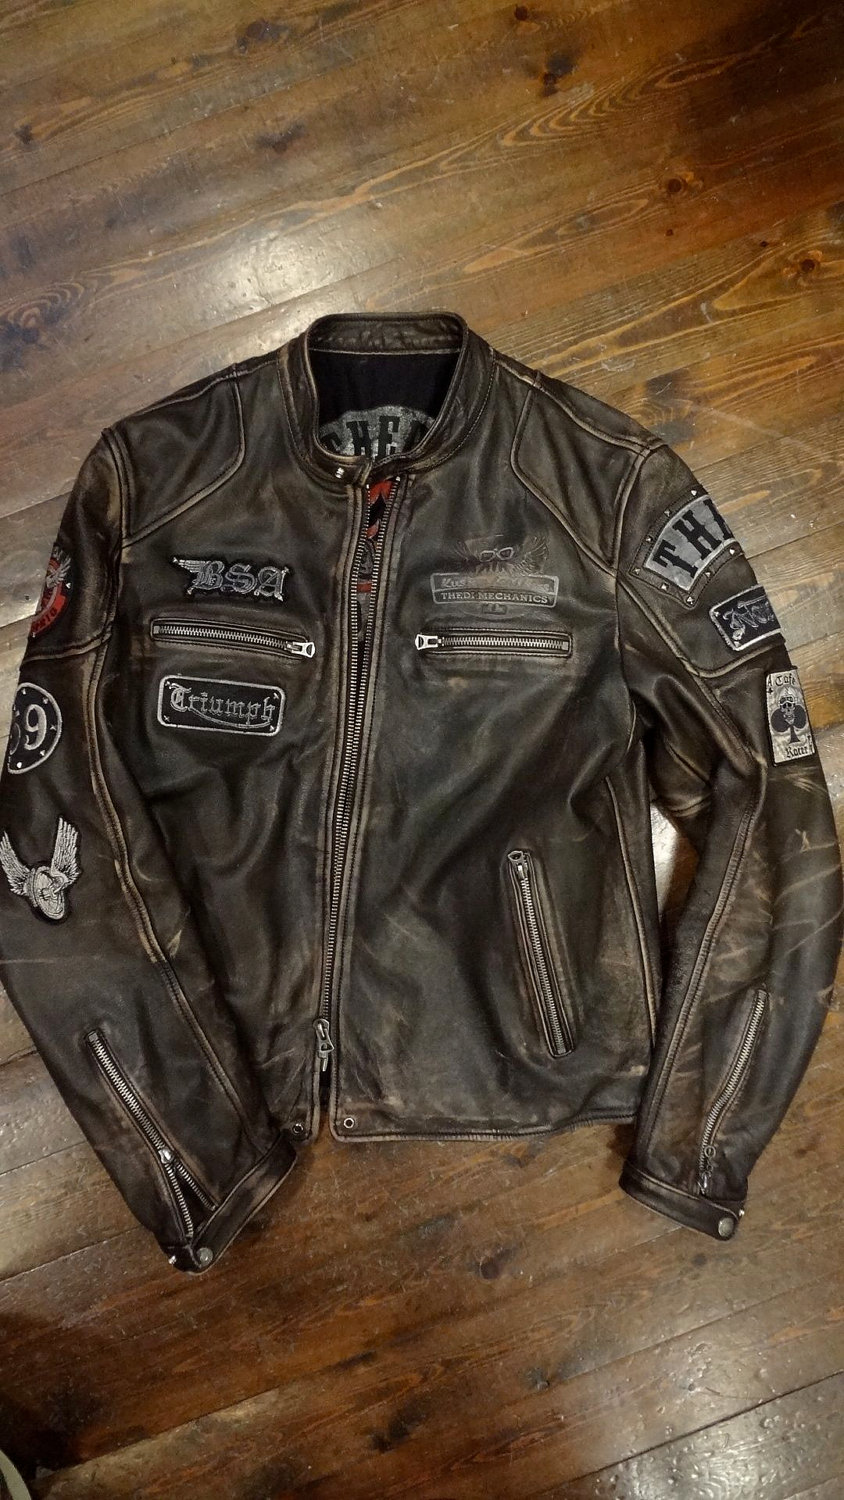 LAVERDA Limited MOTORCYCLE Giacca Moto Leather Biker giacca giubbotto jacket XL